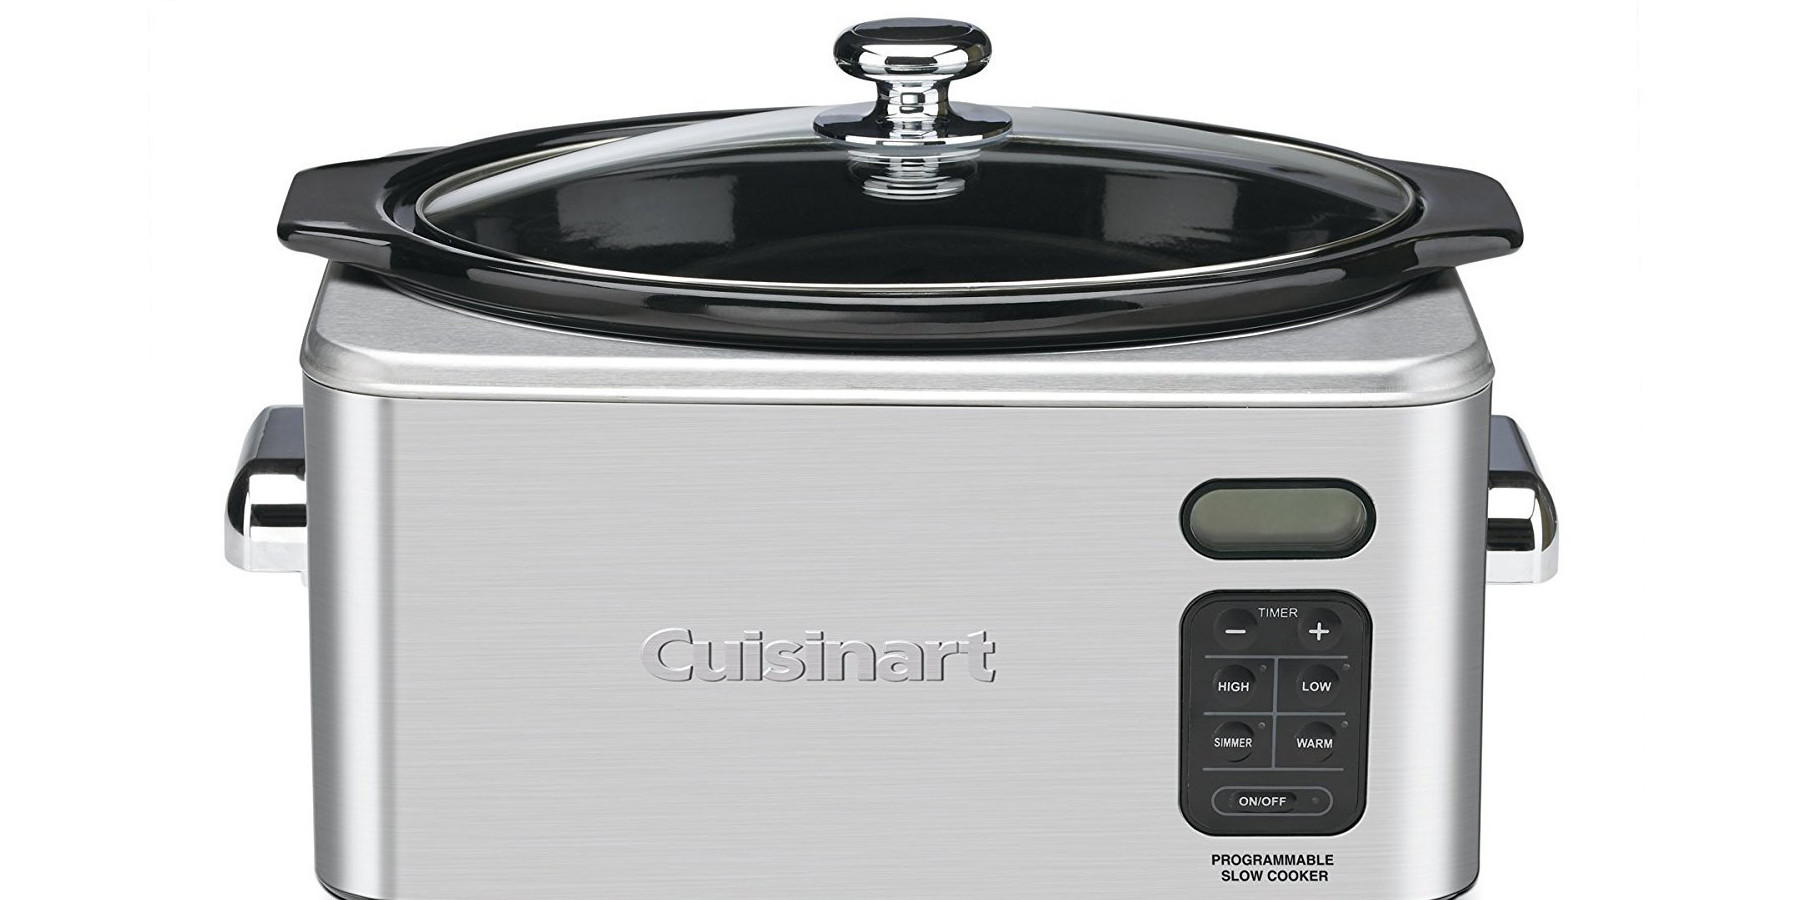 Cuisinart Stainless 6.5-Quart Programmable Slow Cooker drops to $46.50 shipped